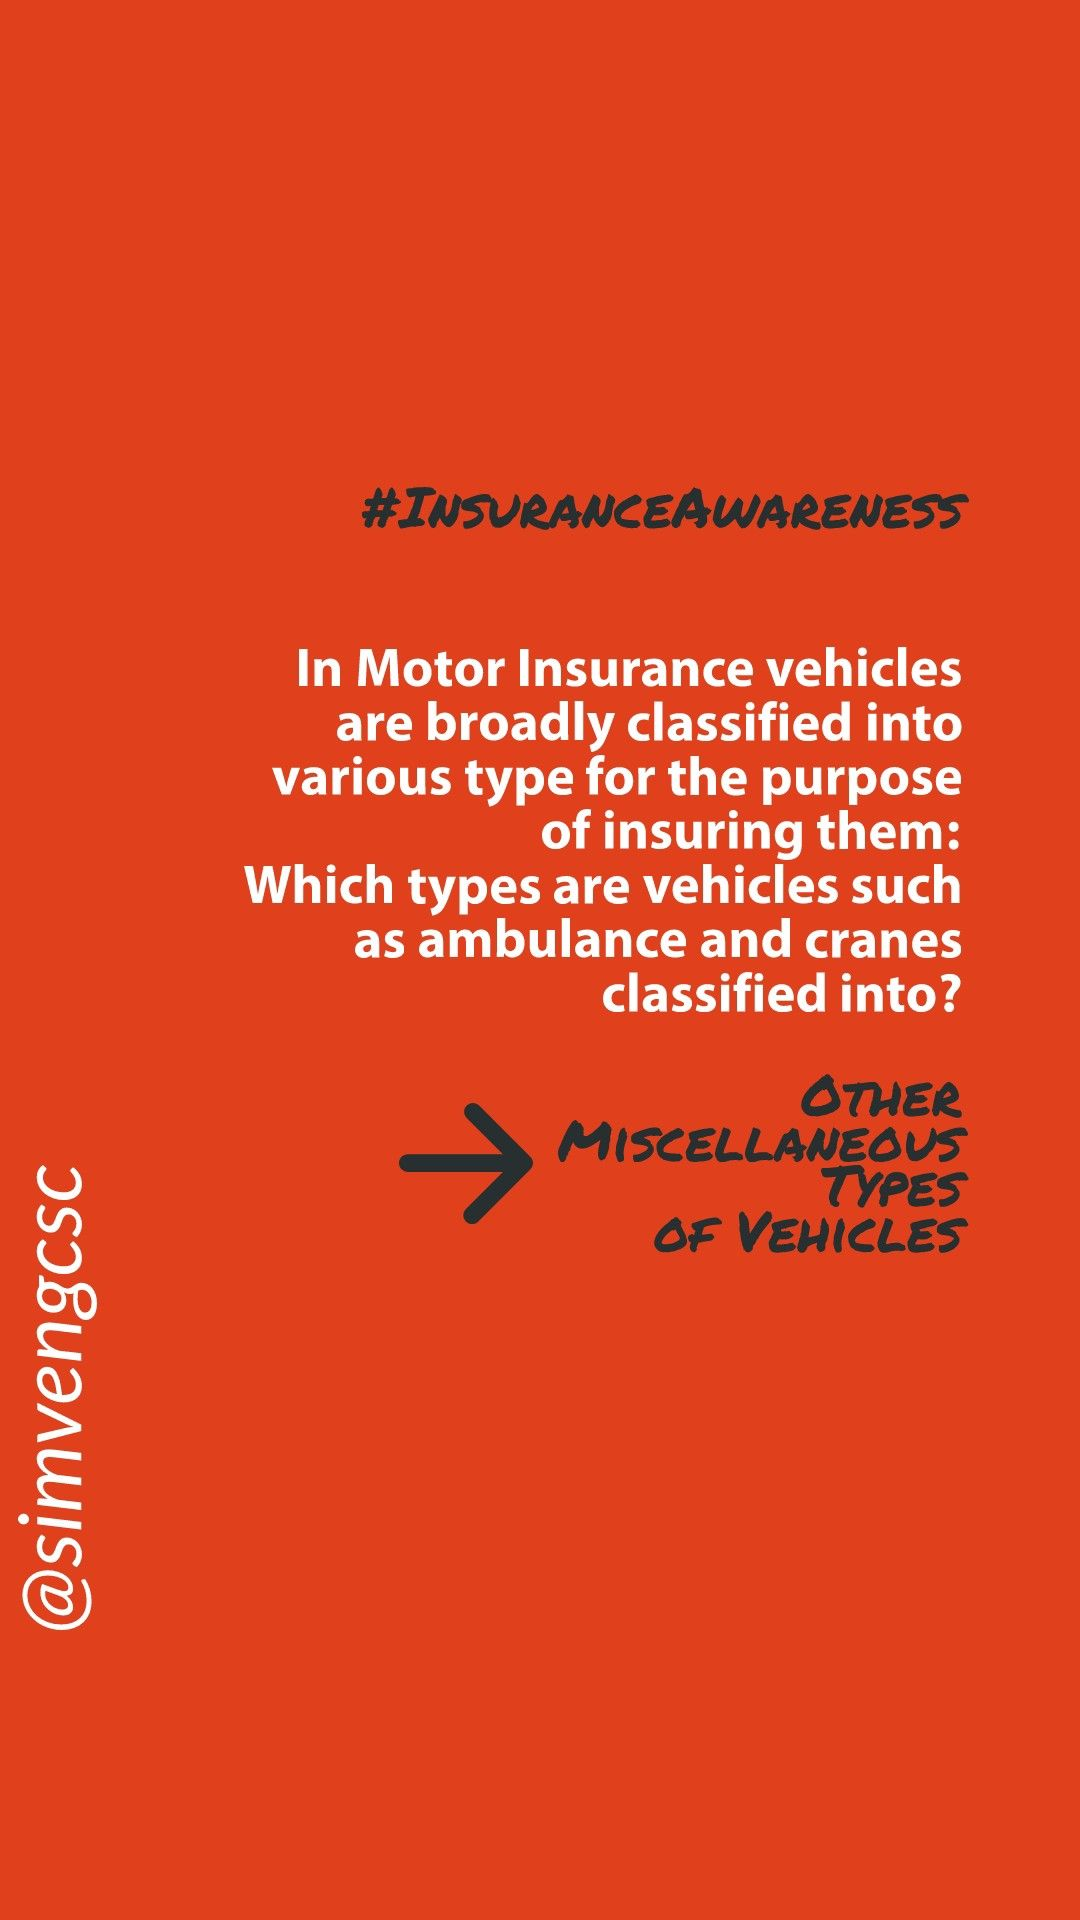 In Motor Insurance vehicles are broadly classified into